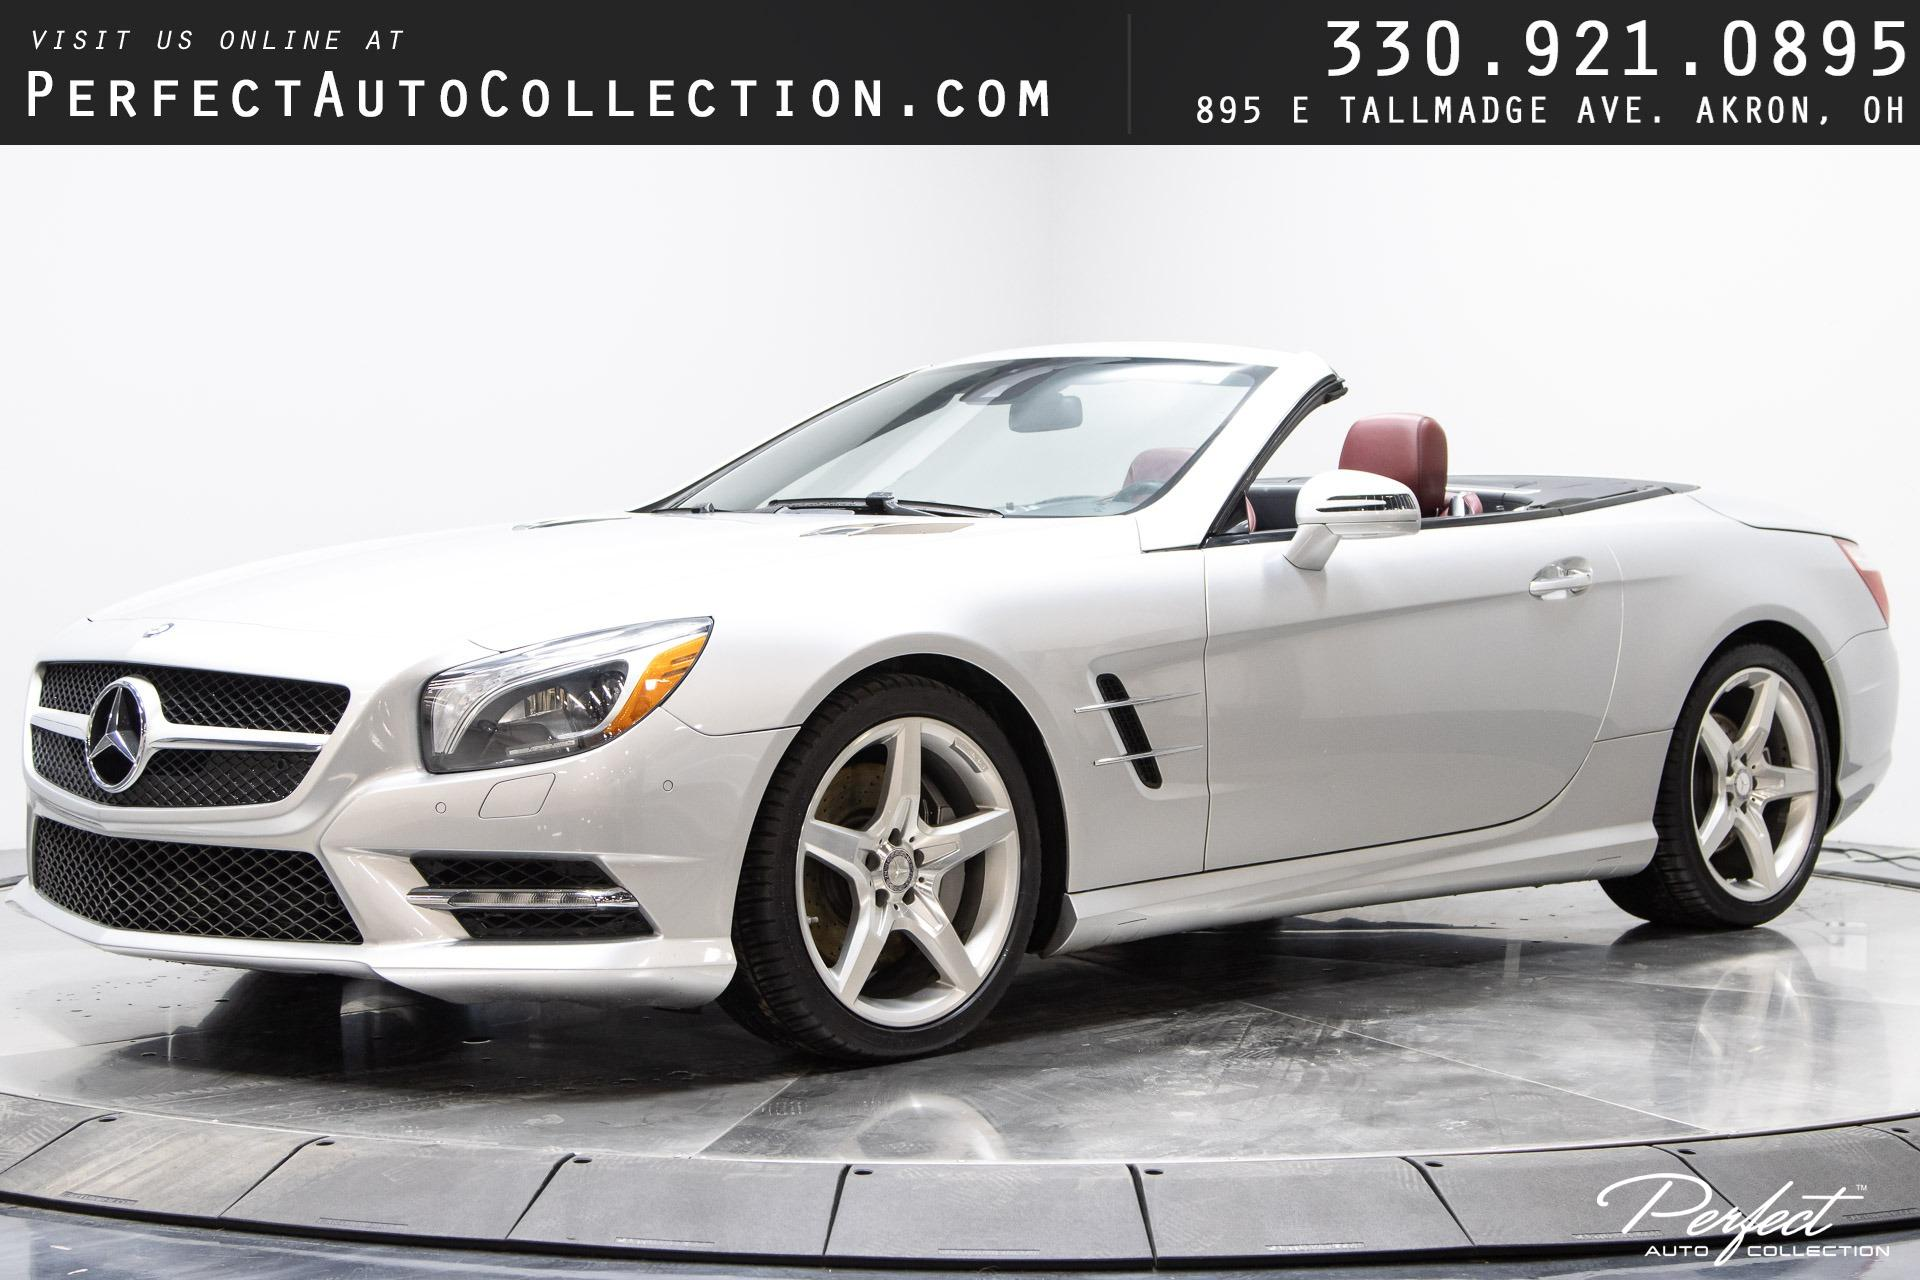 Used 2013 Mercedes-Benz SL-Class SL 550 for sale $44,495 at Perfect Auto Collection in Akron OH 44310 1